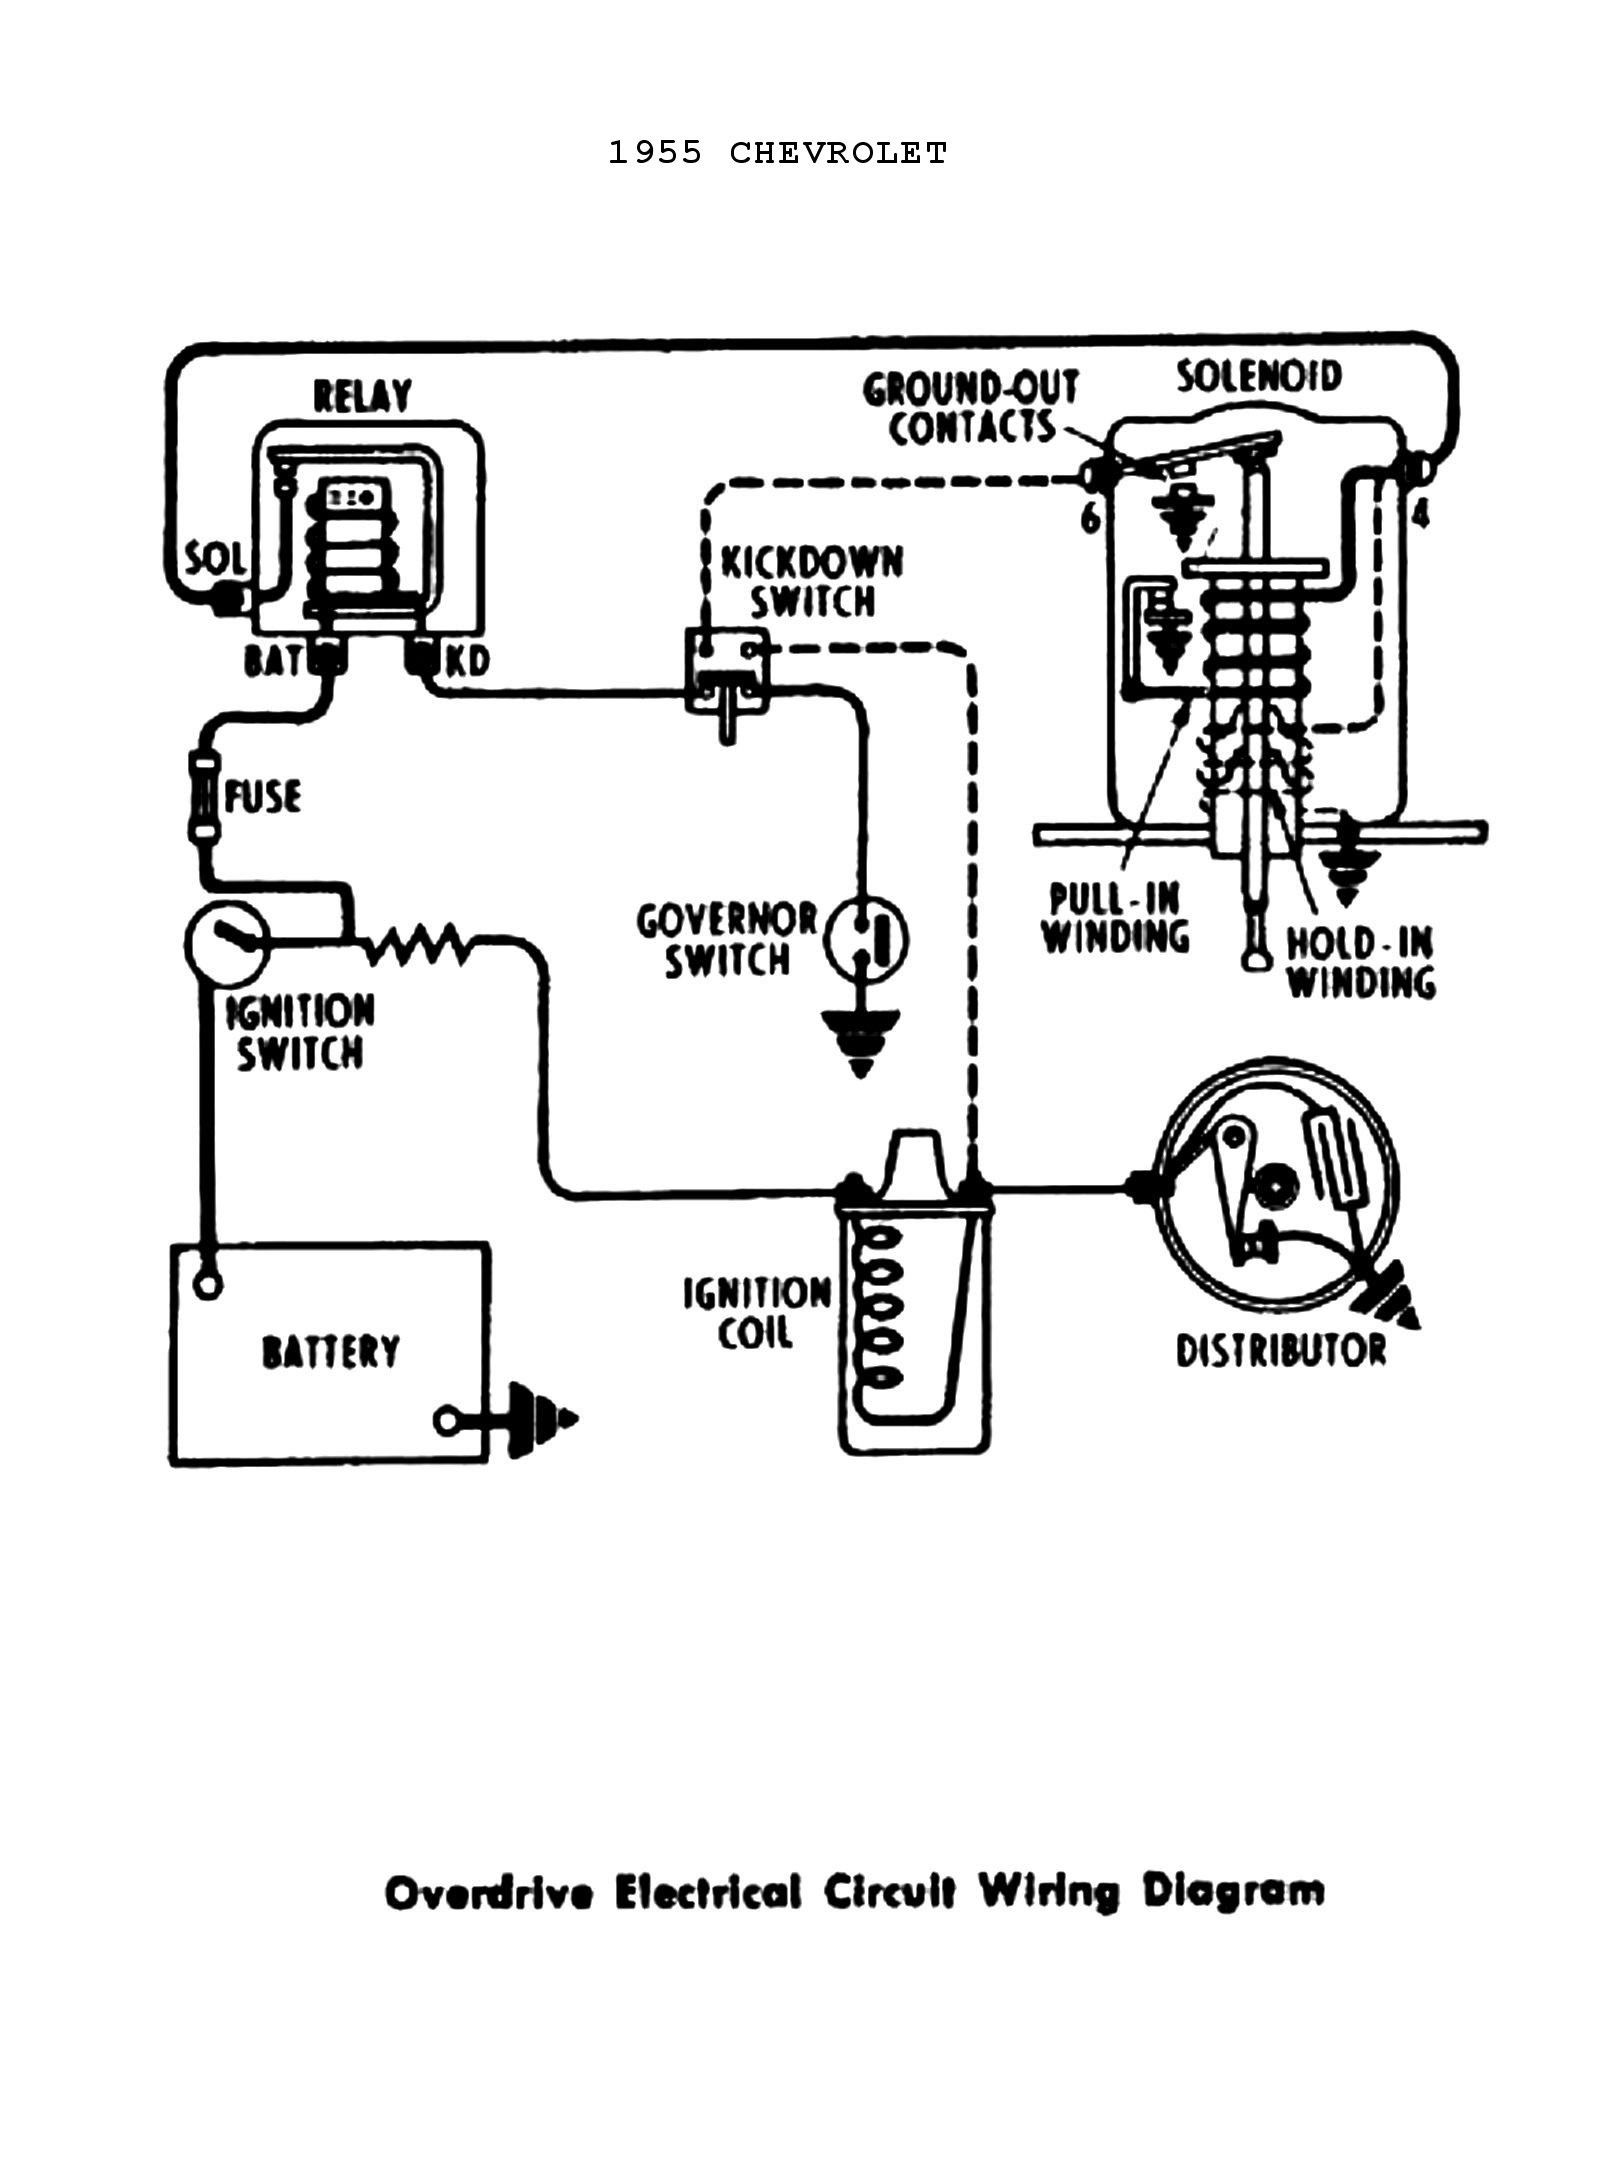 Gm Coil Wiring V6 | cable-village Wiring Diagram union -  cable-village.buildingblocks2016.eu | Ford F 500 Wiring Diagram 1974 Ignition Coil |  | buildingblocks2016.eu